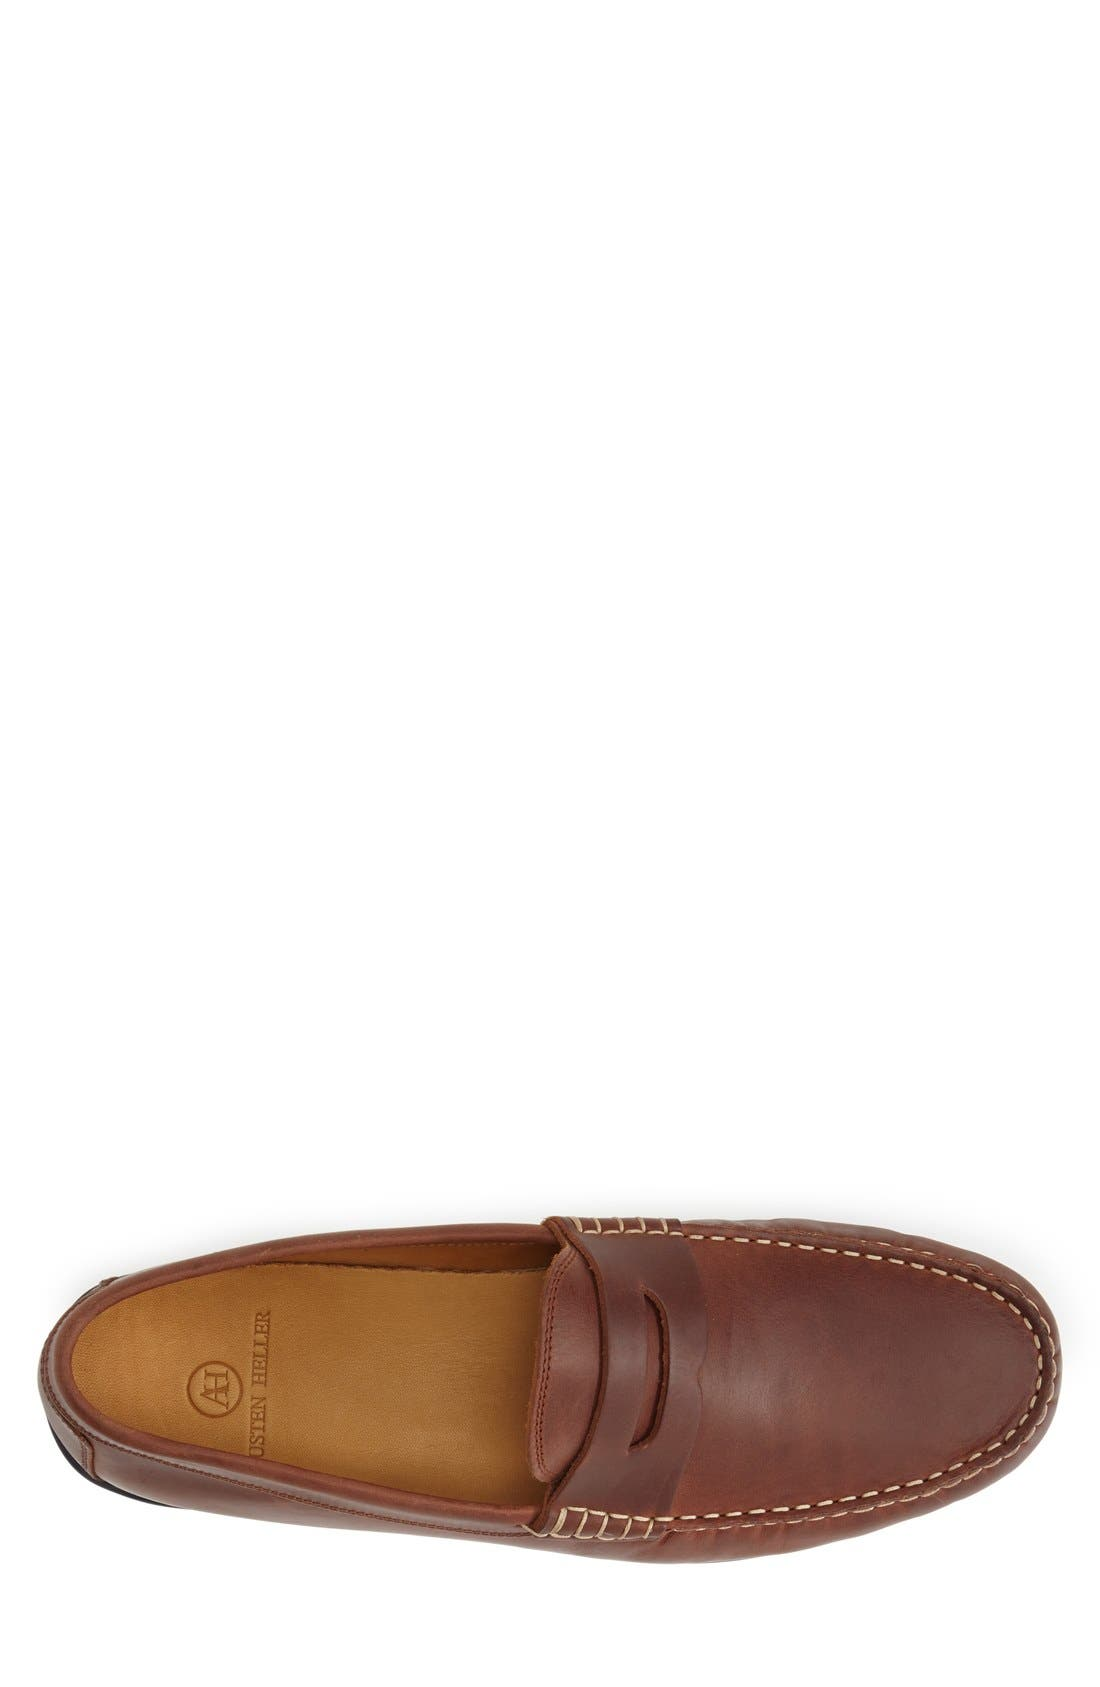 'Clinton' Leather Penny Loafer,                             Alternate thumbnail 8, color,                             LIGHT BROWN